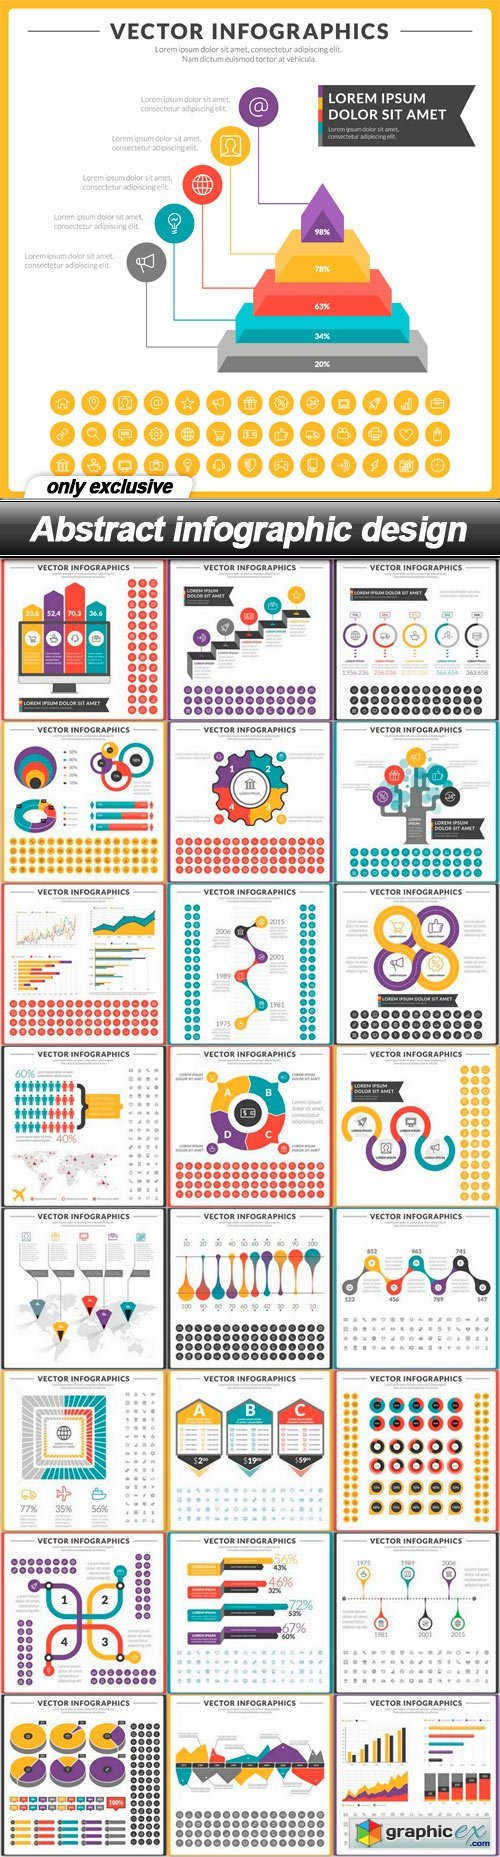 Abstract infographic design - 25 EPS